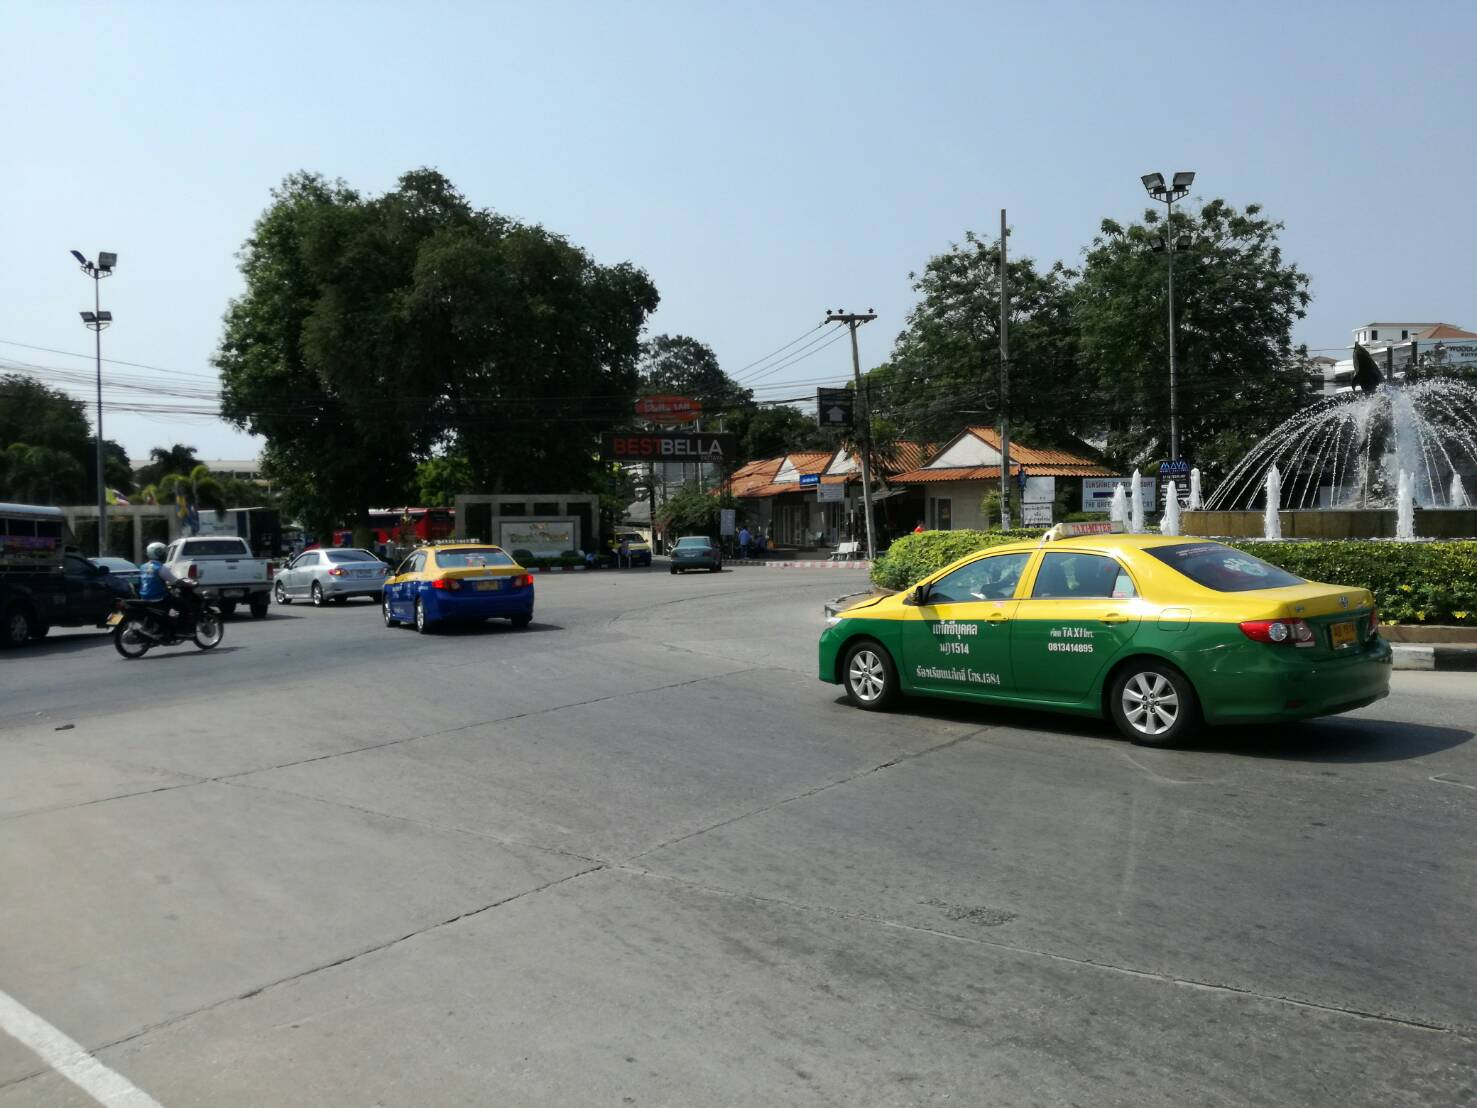 In a compact city rife with 10-baht songthaews and convenient motorcycles, drivers of metered taxis say they can't make a living by charging legal rates.